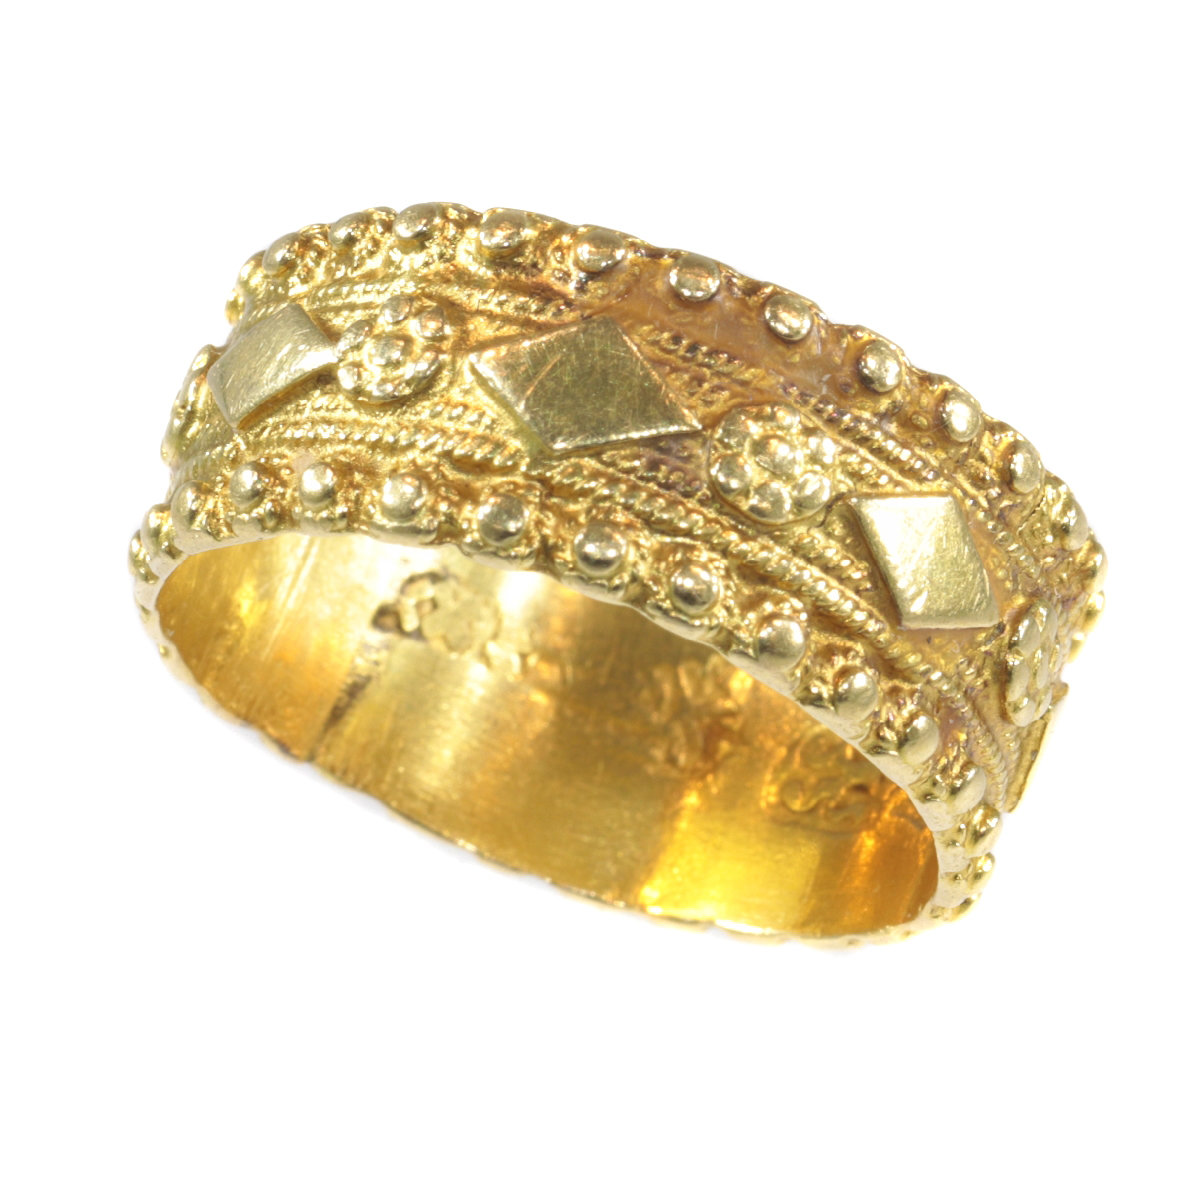 Late 18th Century Dutch gold ring hallmarked with Amsterdam hallmarks